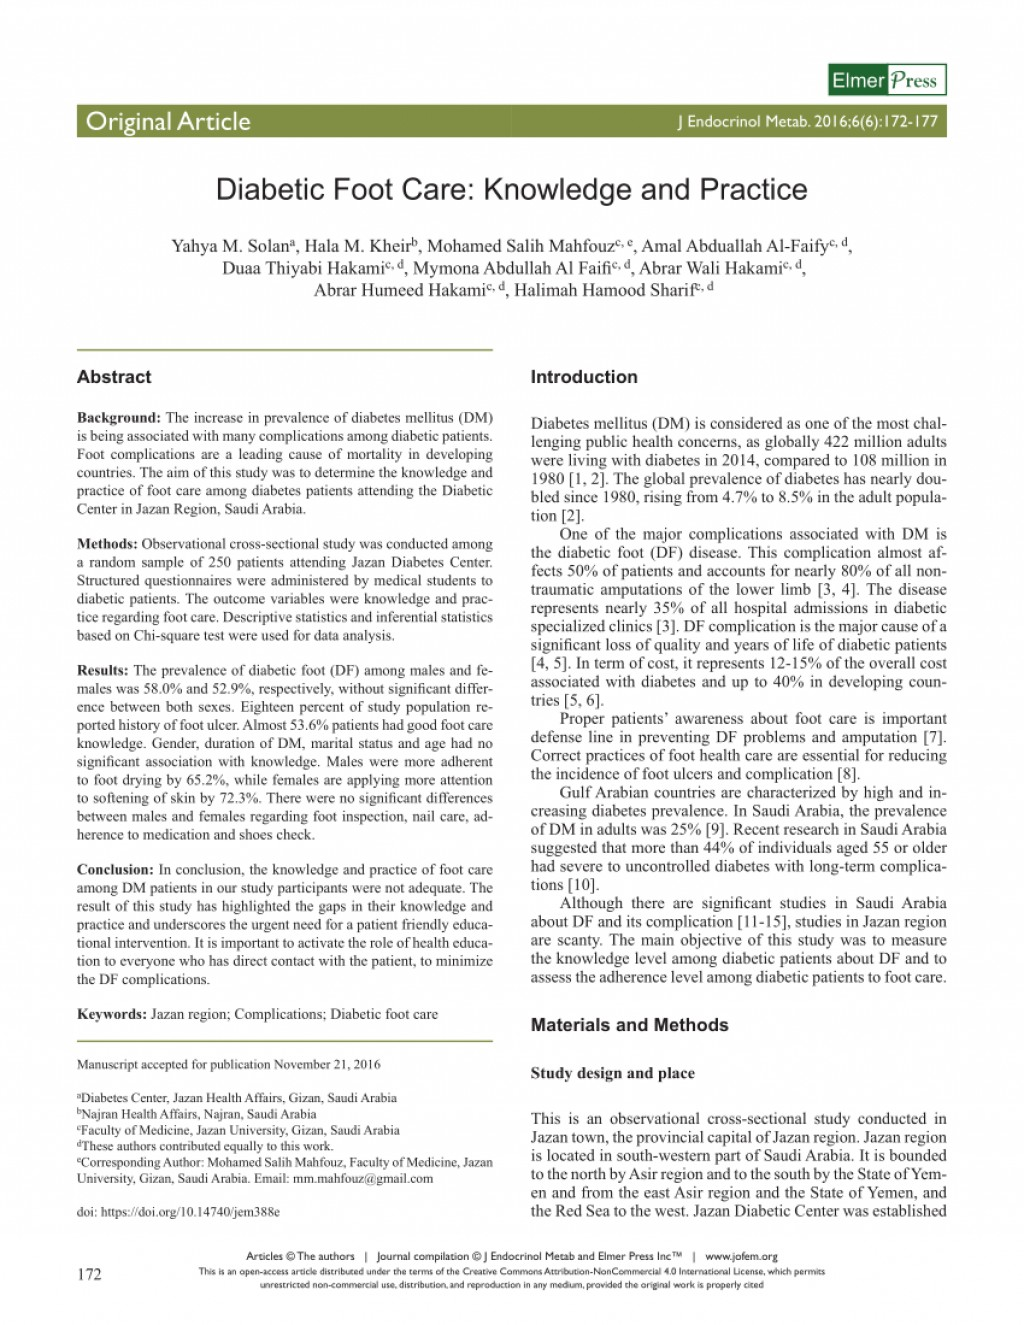 004 Research Paper Diabetic Foot Papers Excellent Ulcers Large